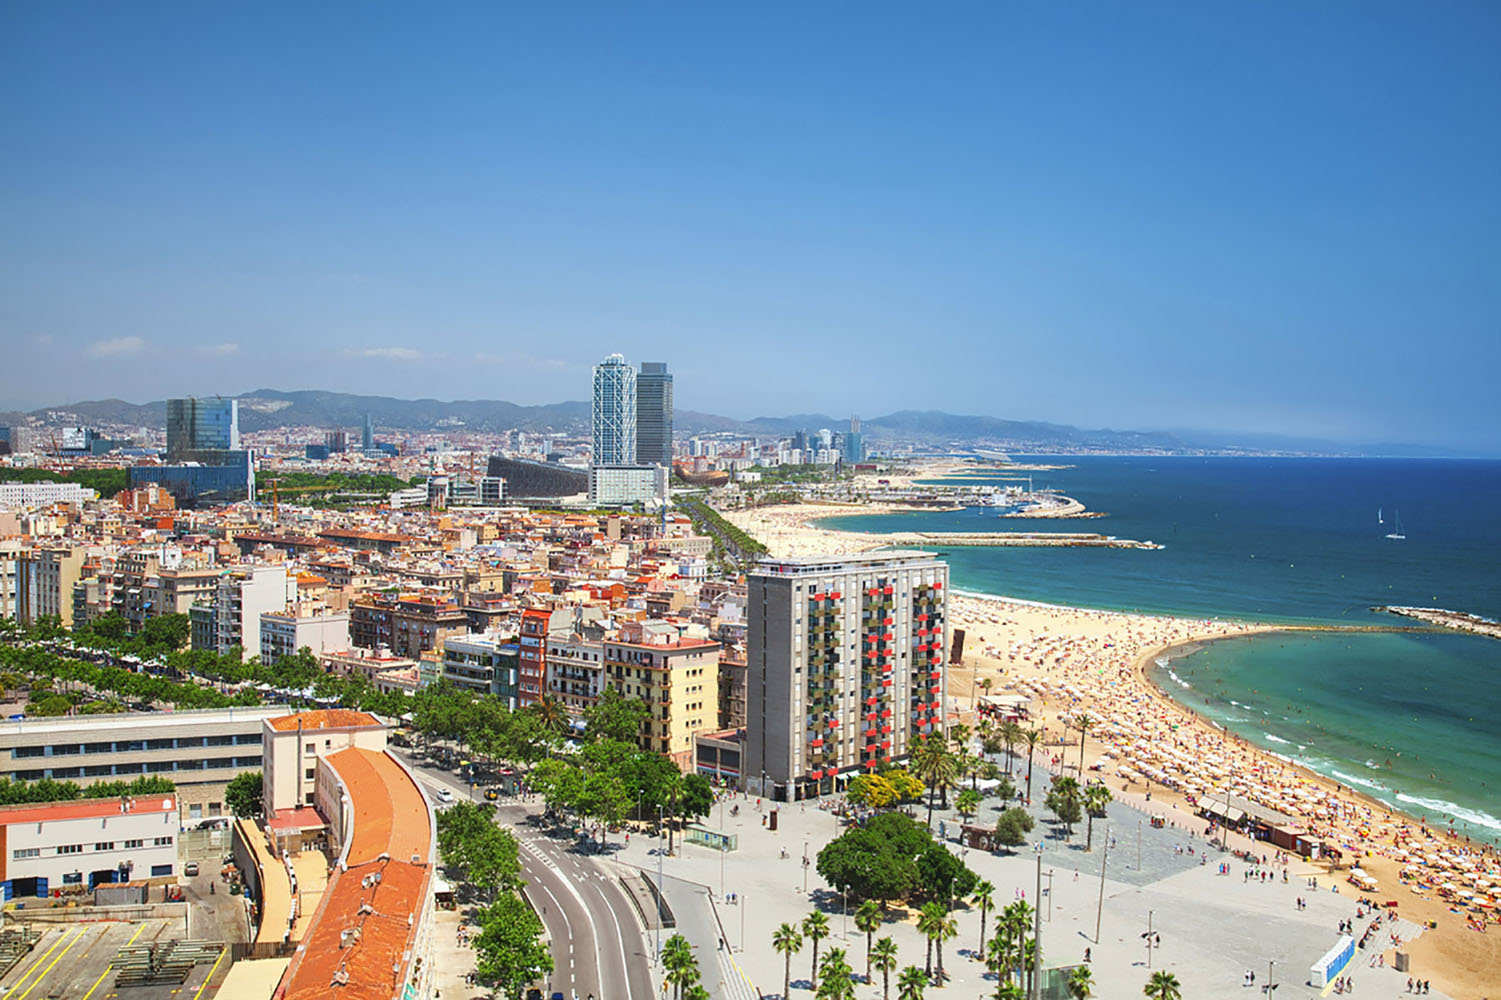 For a real urban beach experience, visit Barceloneta Beach in Barcelona.